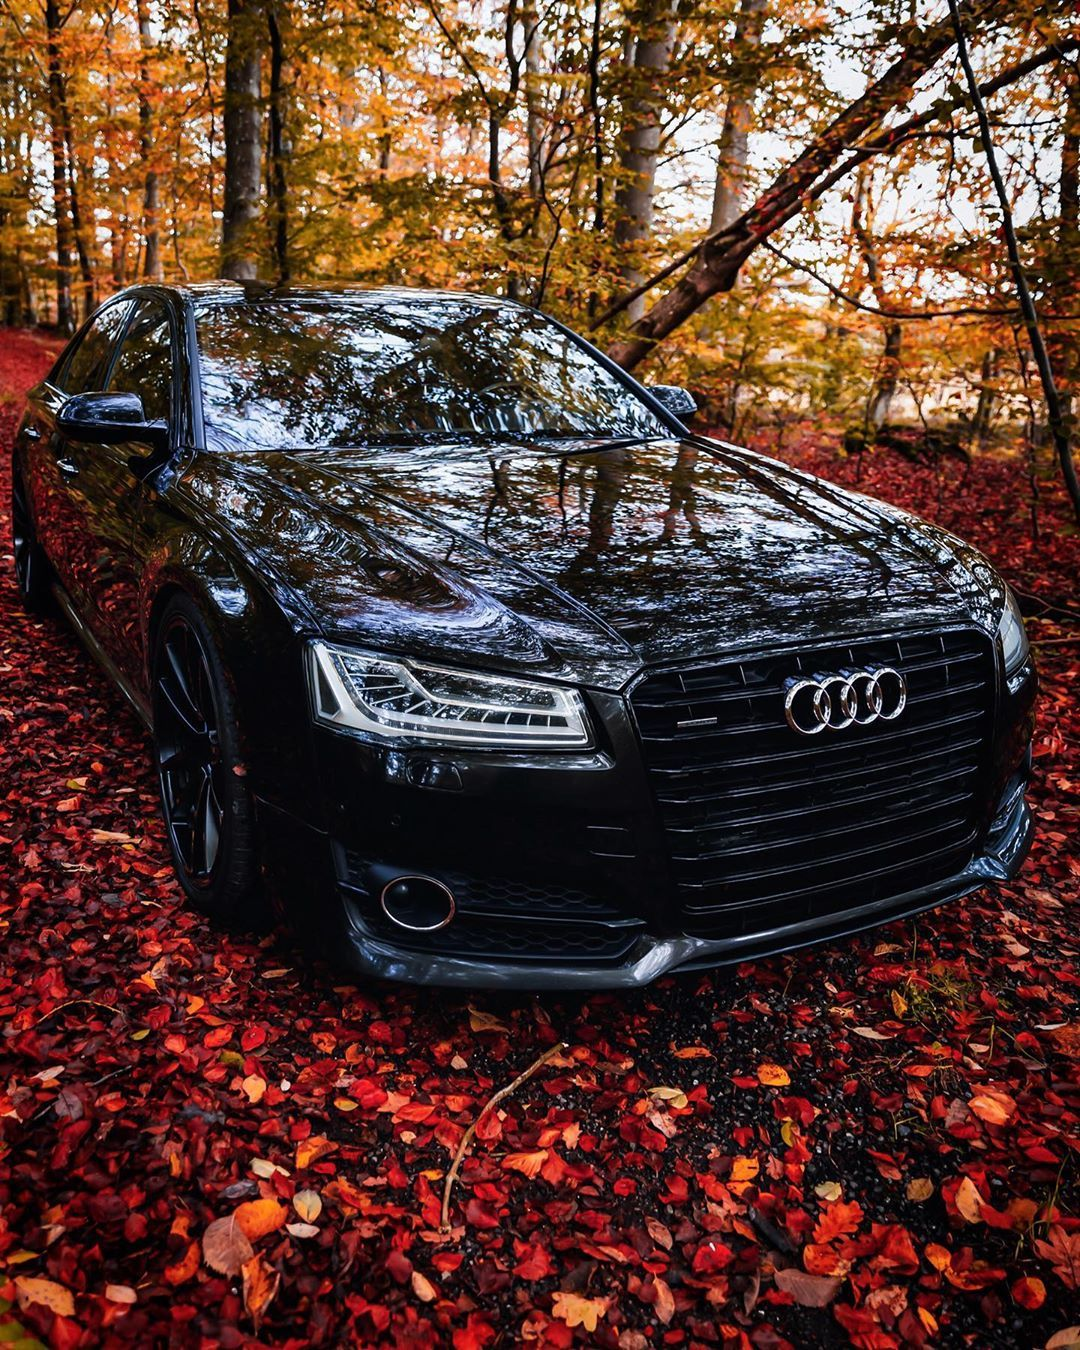 1 121 Likes 17 Comments Audi A8 4h D4 4 2 V8 Bitdi Maskoc On Instagram Thank You So Much For Beautiful Colors They Will Always Make Me Smile Wh